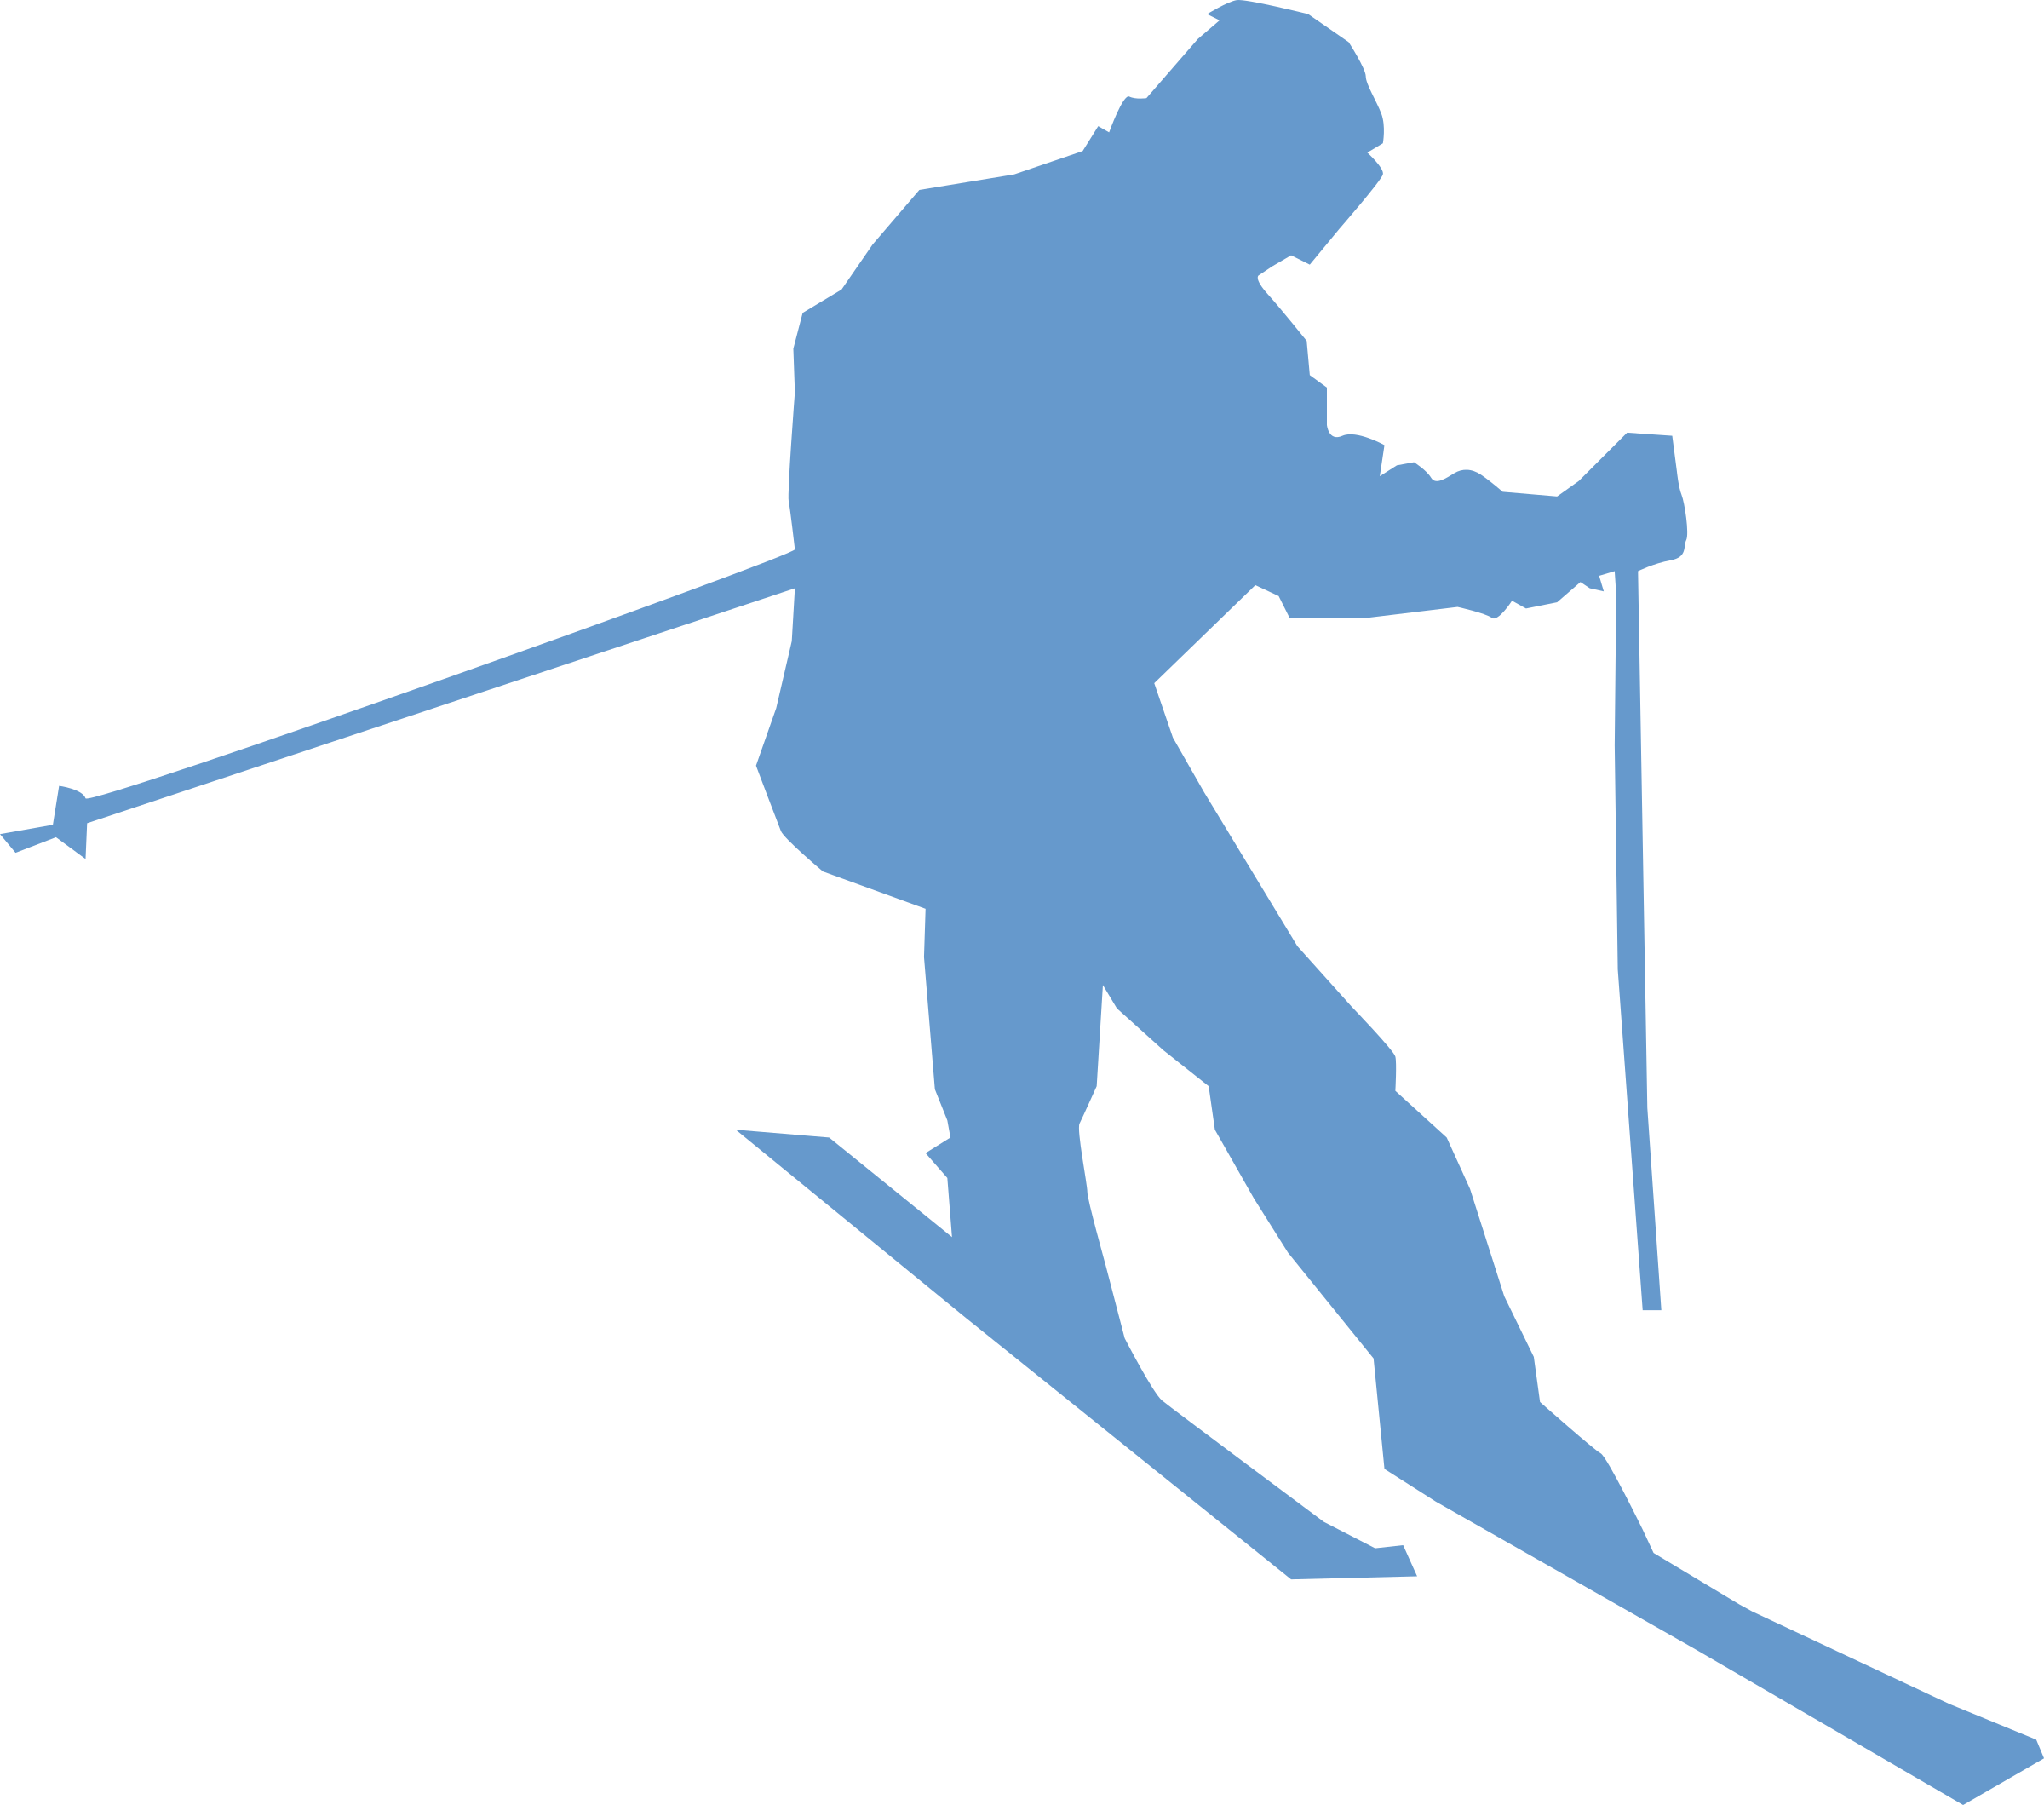 Ski silhoette icons png. Skiing clipart skiing holiday